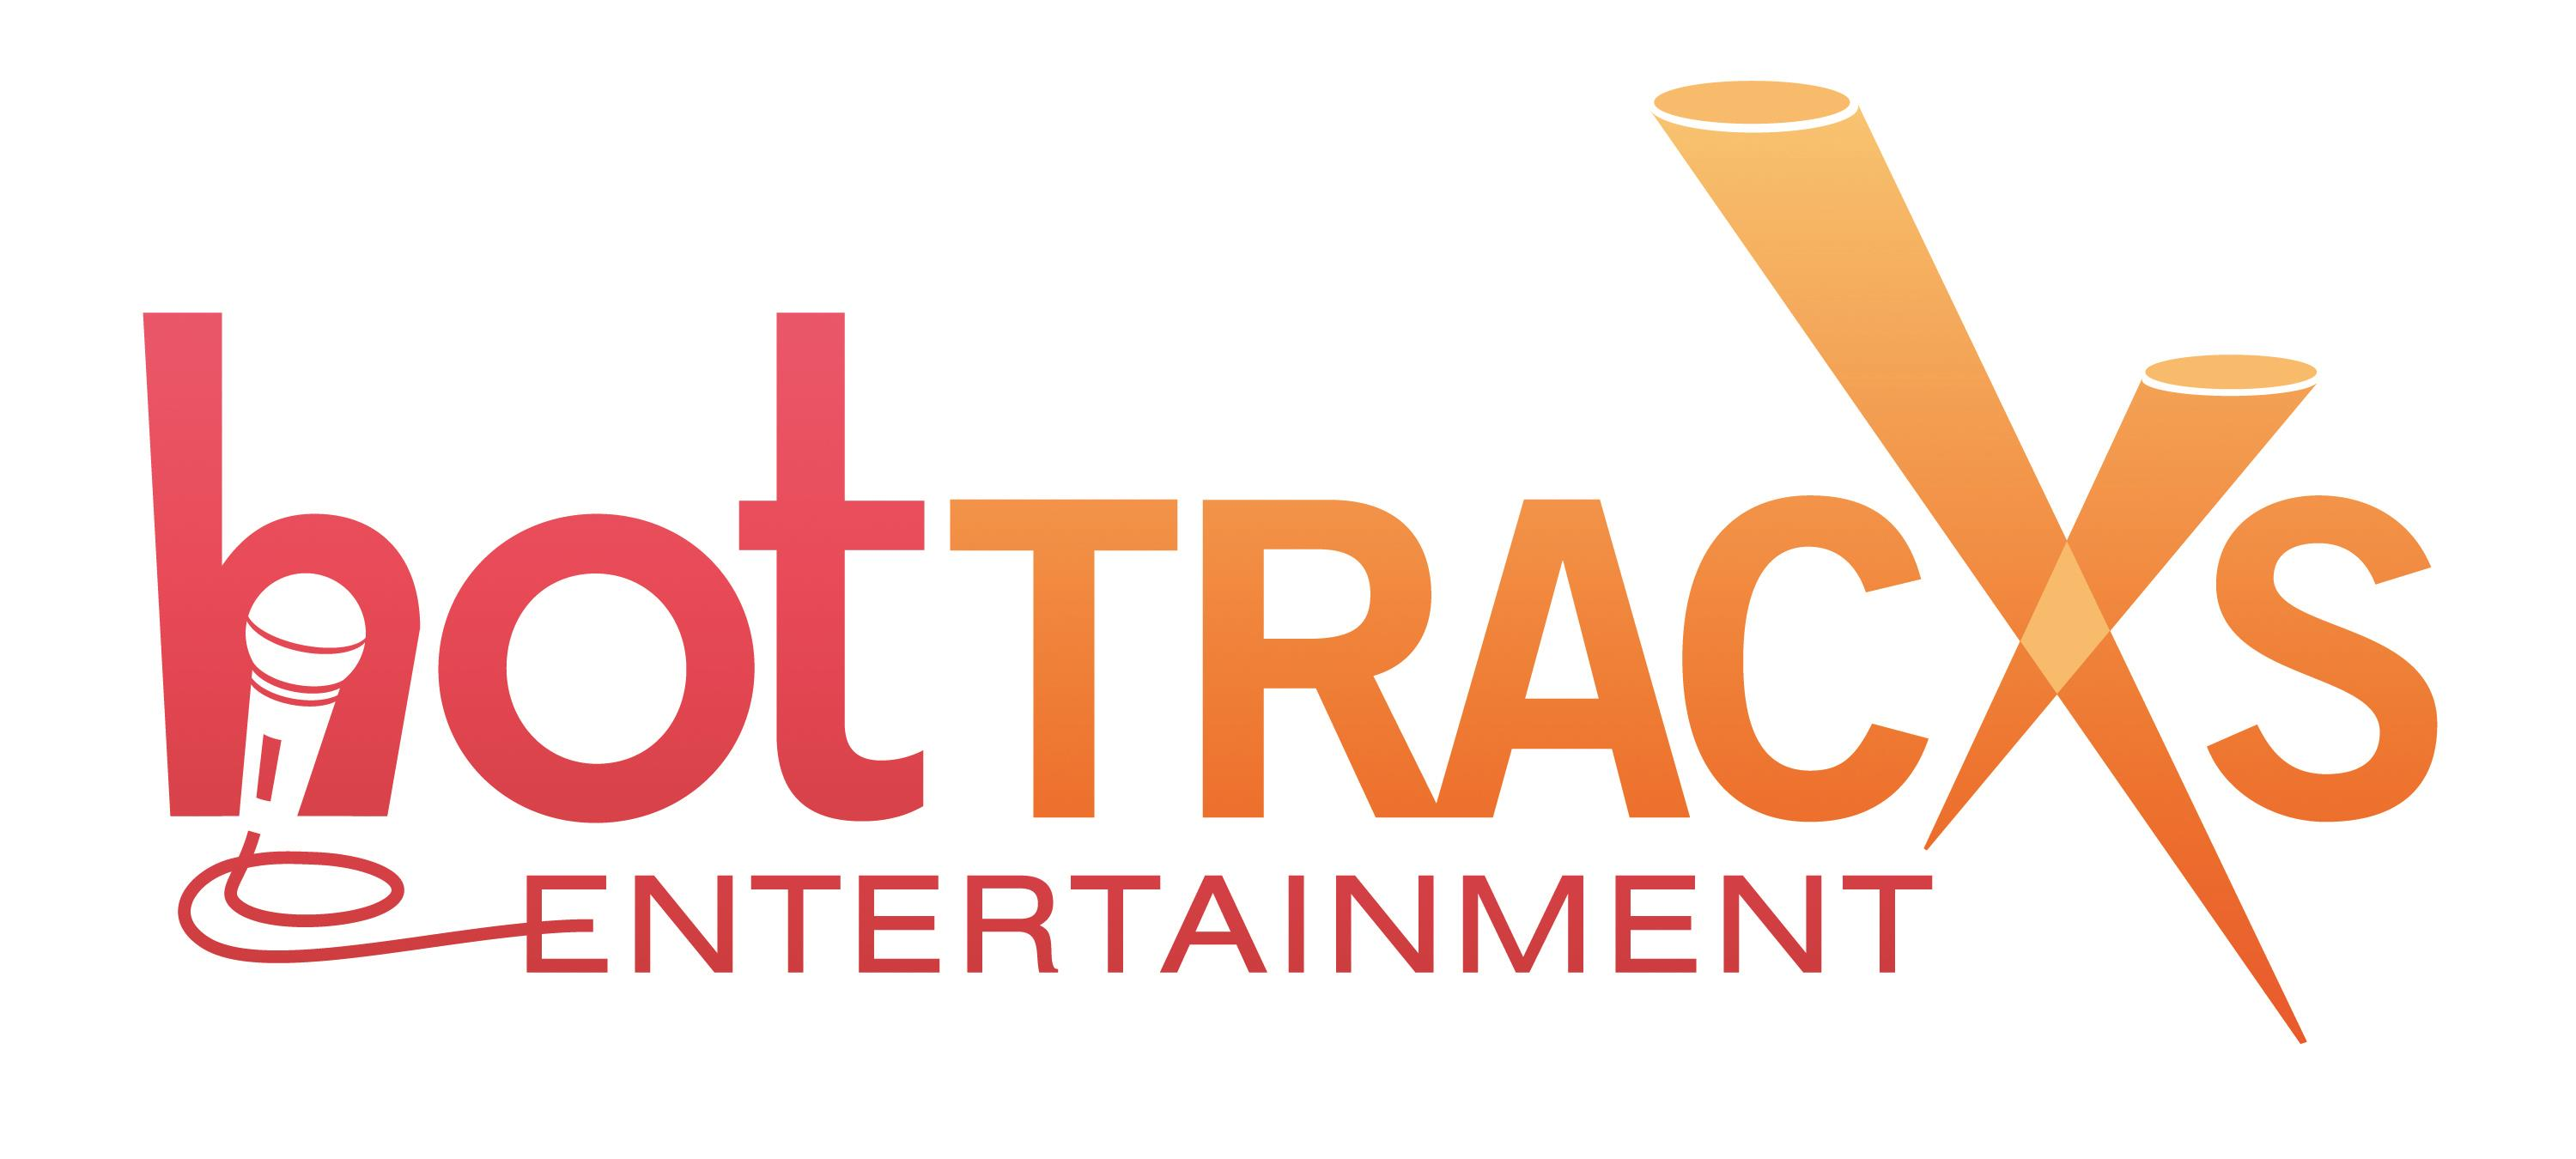 Hottracxs Entertainment Llc